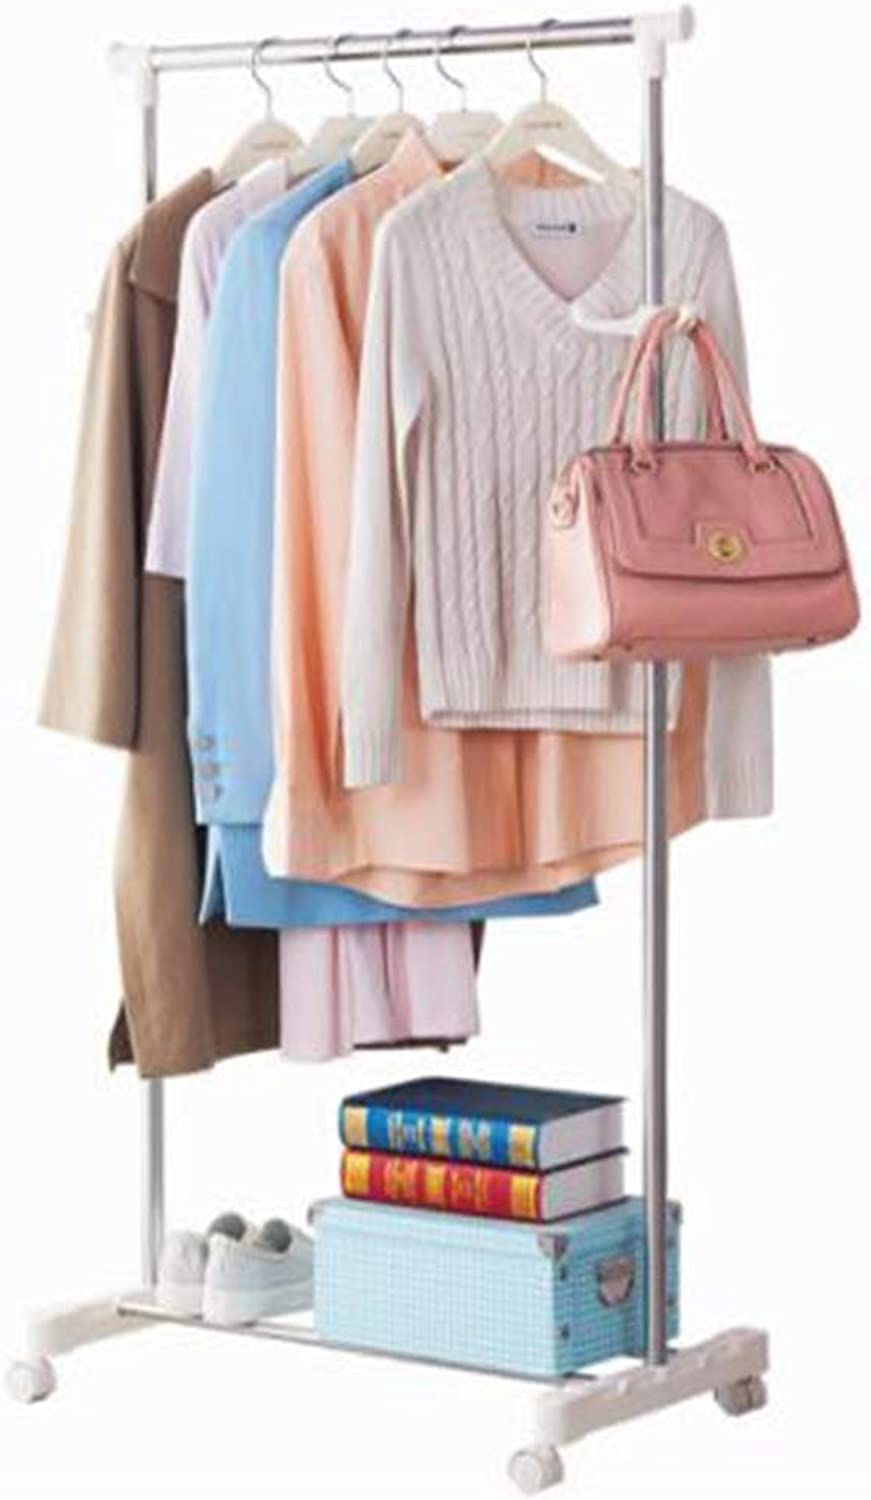 Standing Coat Racks Simple Metal Coat Rack Floor Clothes Rack Bedroom Living Room Mobile Hanger Modern Minimalist Floor Hanger -0223